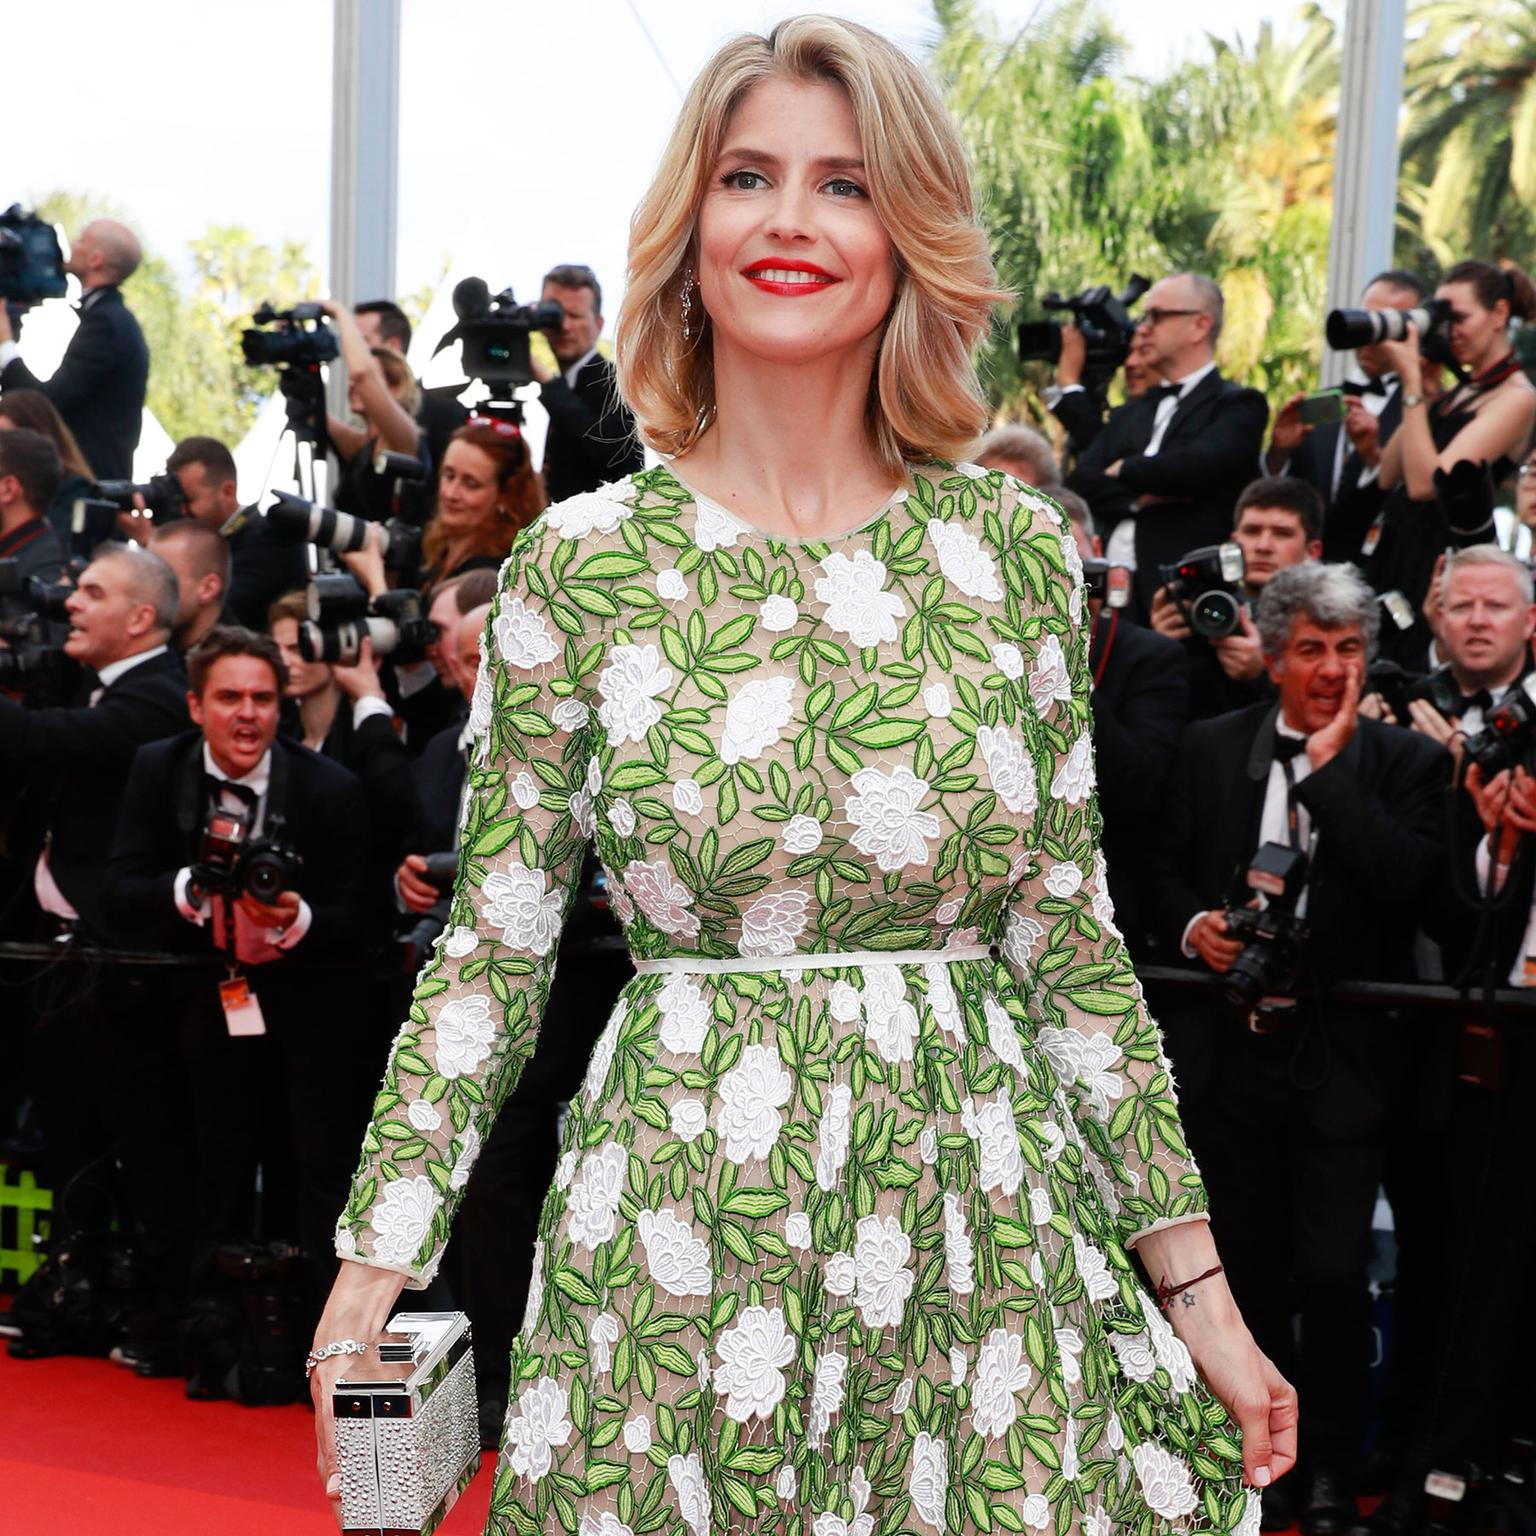 Cannes 2016 Day 1: Alice Taglioni in Montblanc